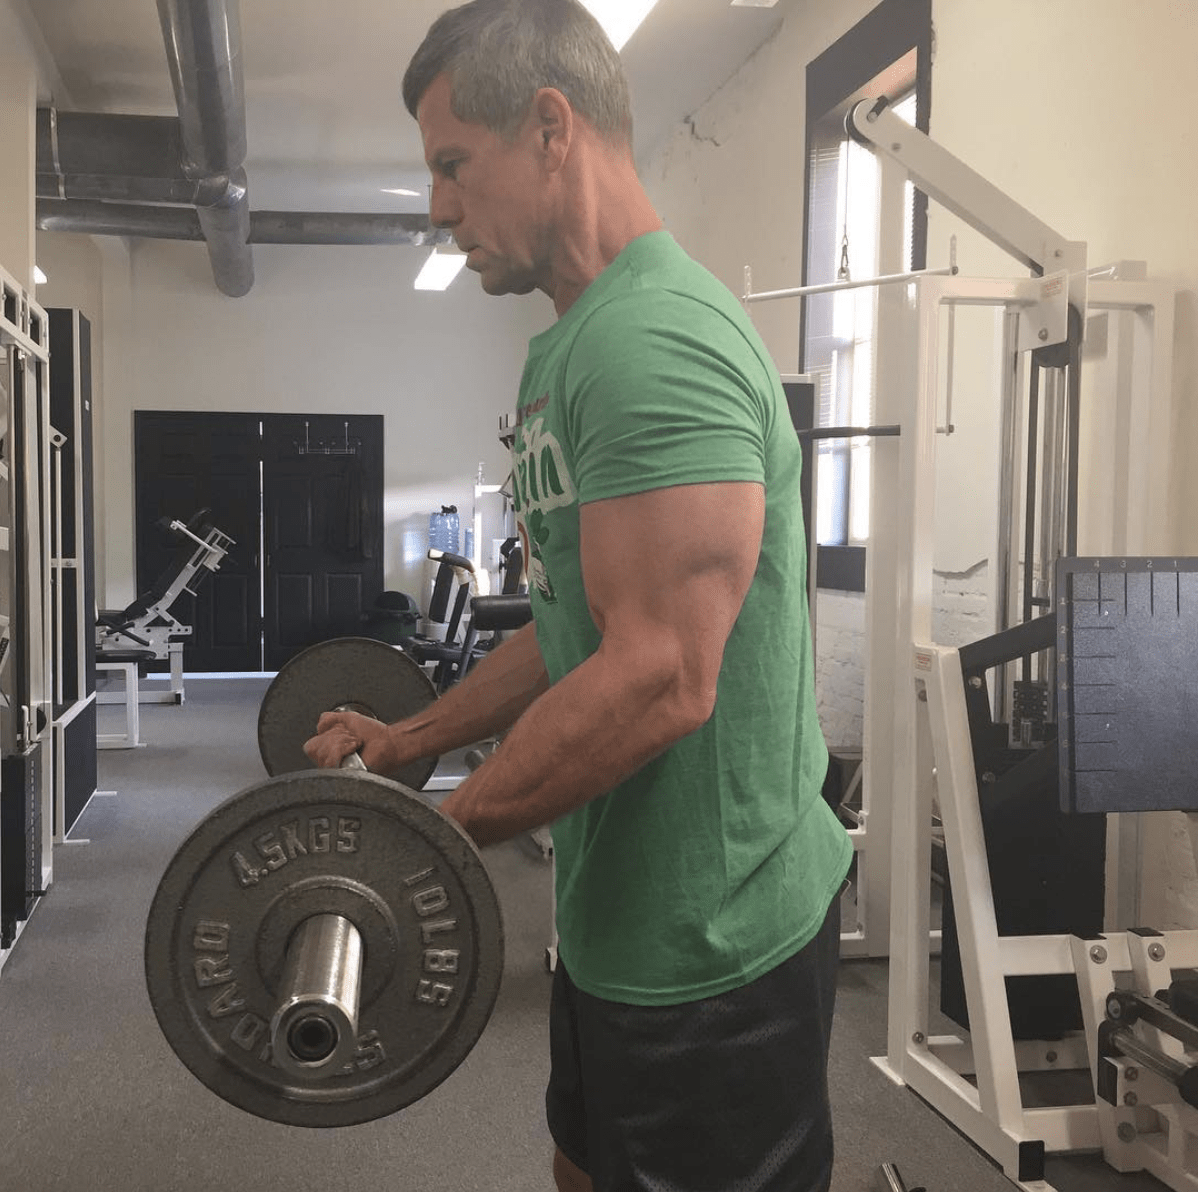 Dr Doug McGuff doing barbell curls